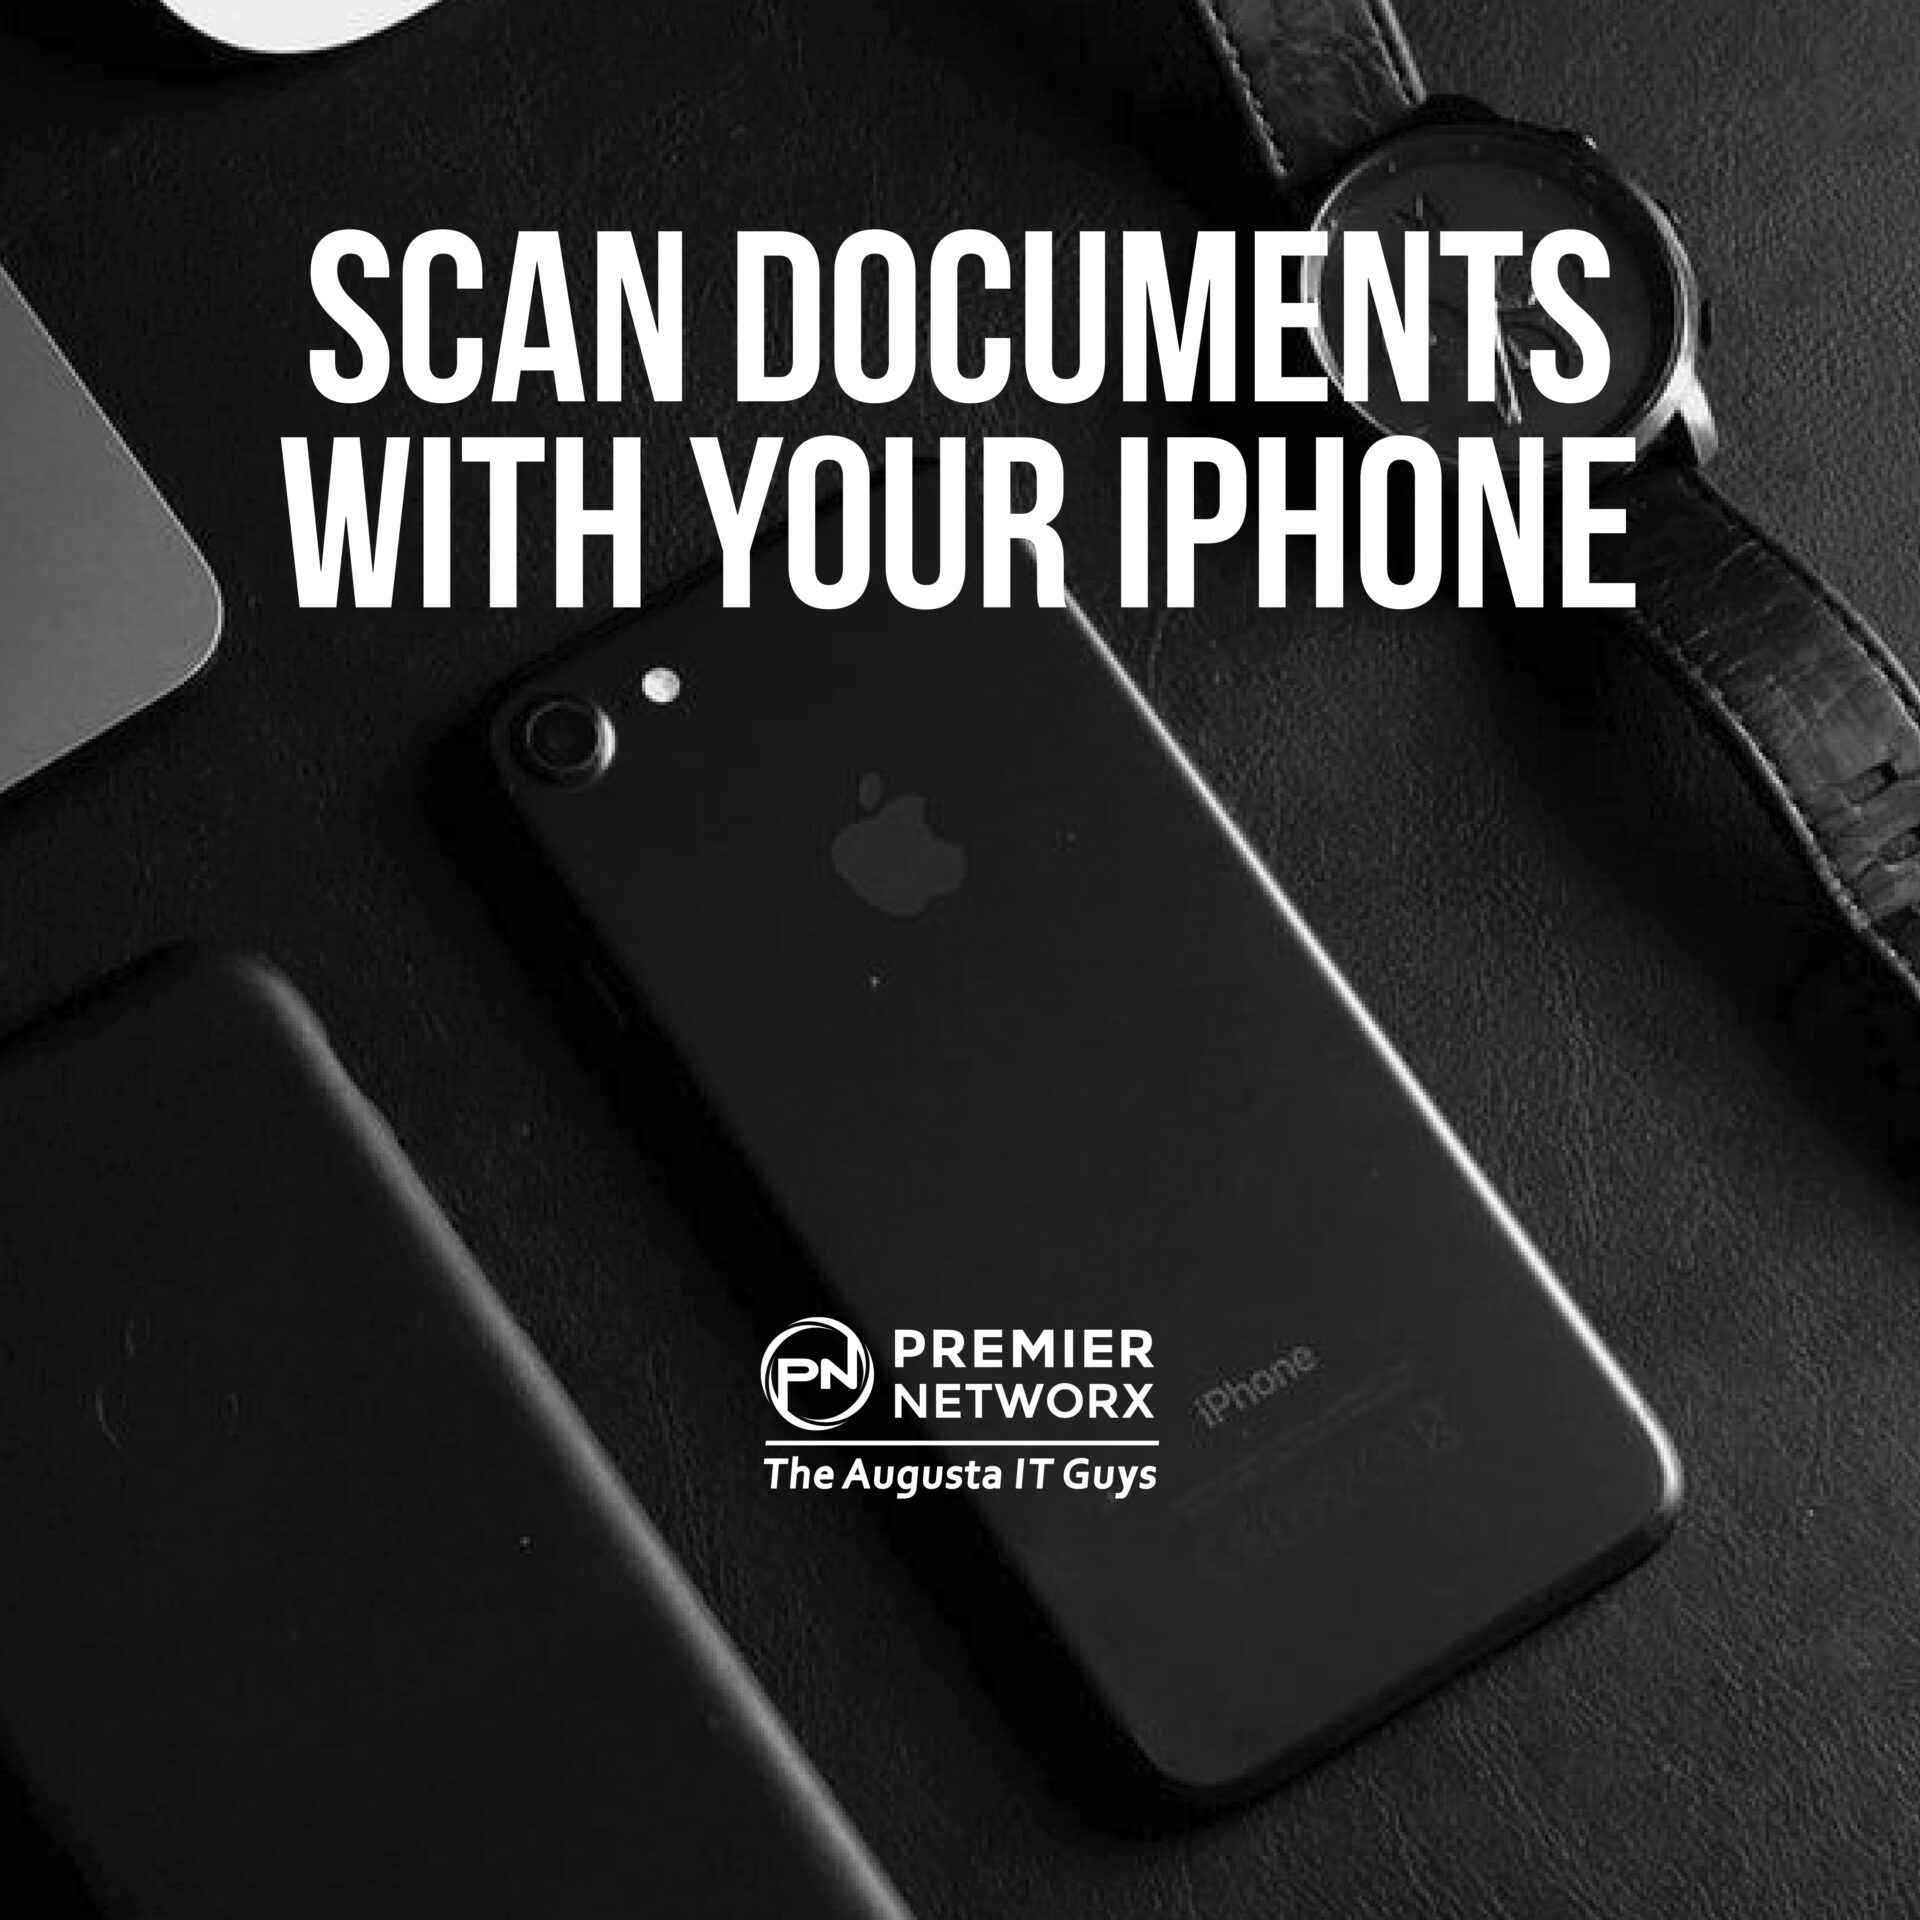 Premier Networx Scan Documents with iPhone